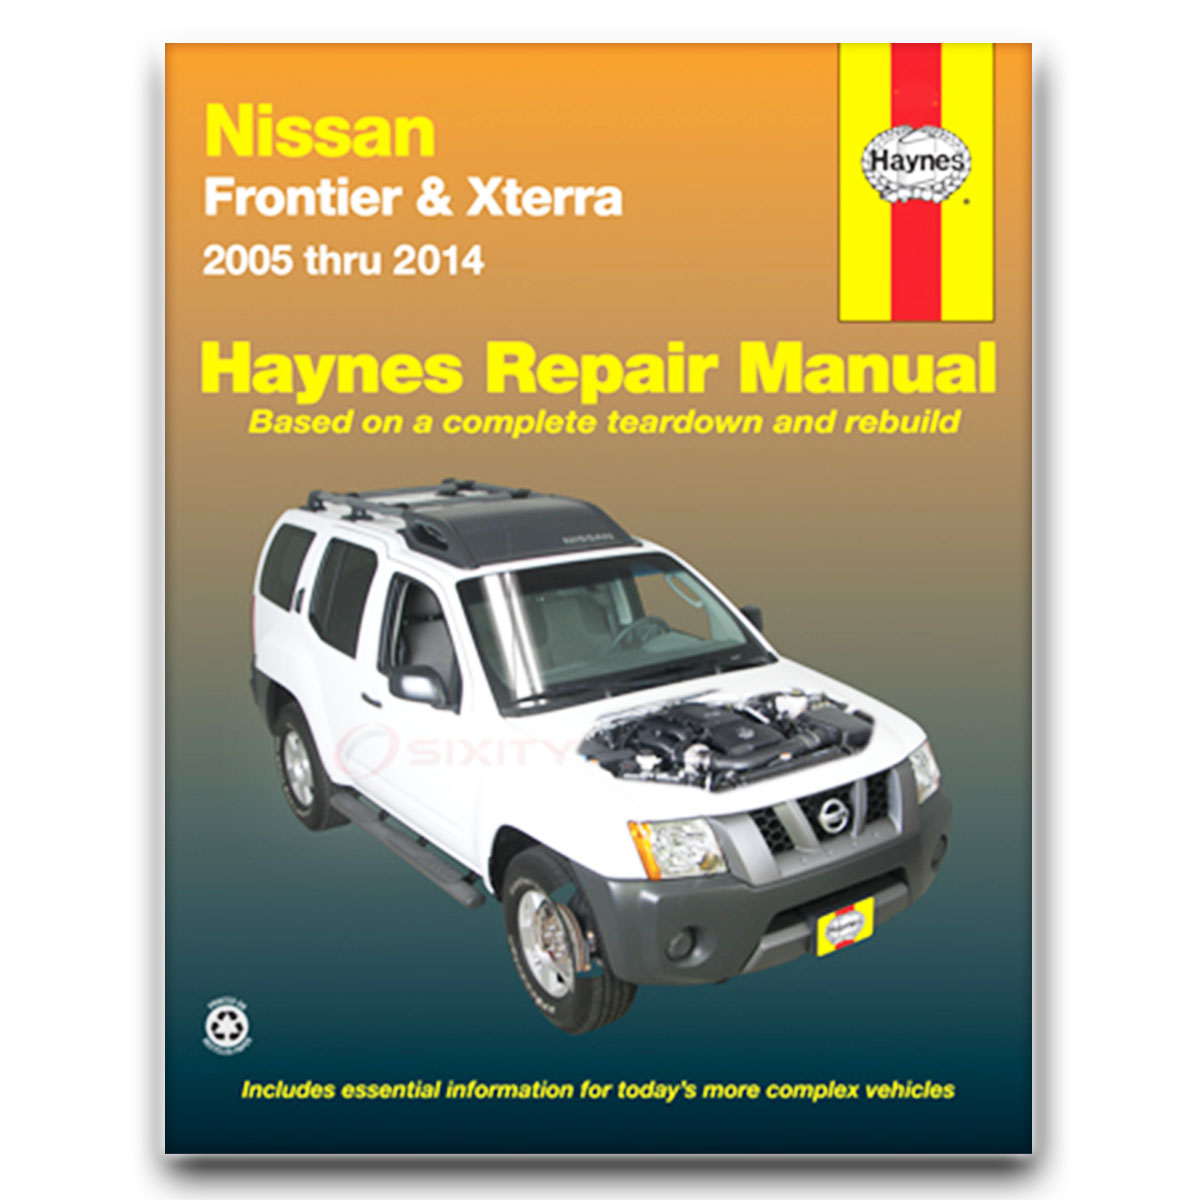 Haynes Repair Manual For 2005-2014 Nissan Xterra